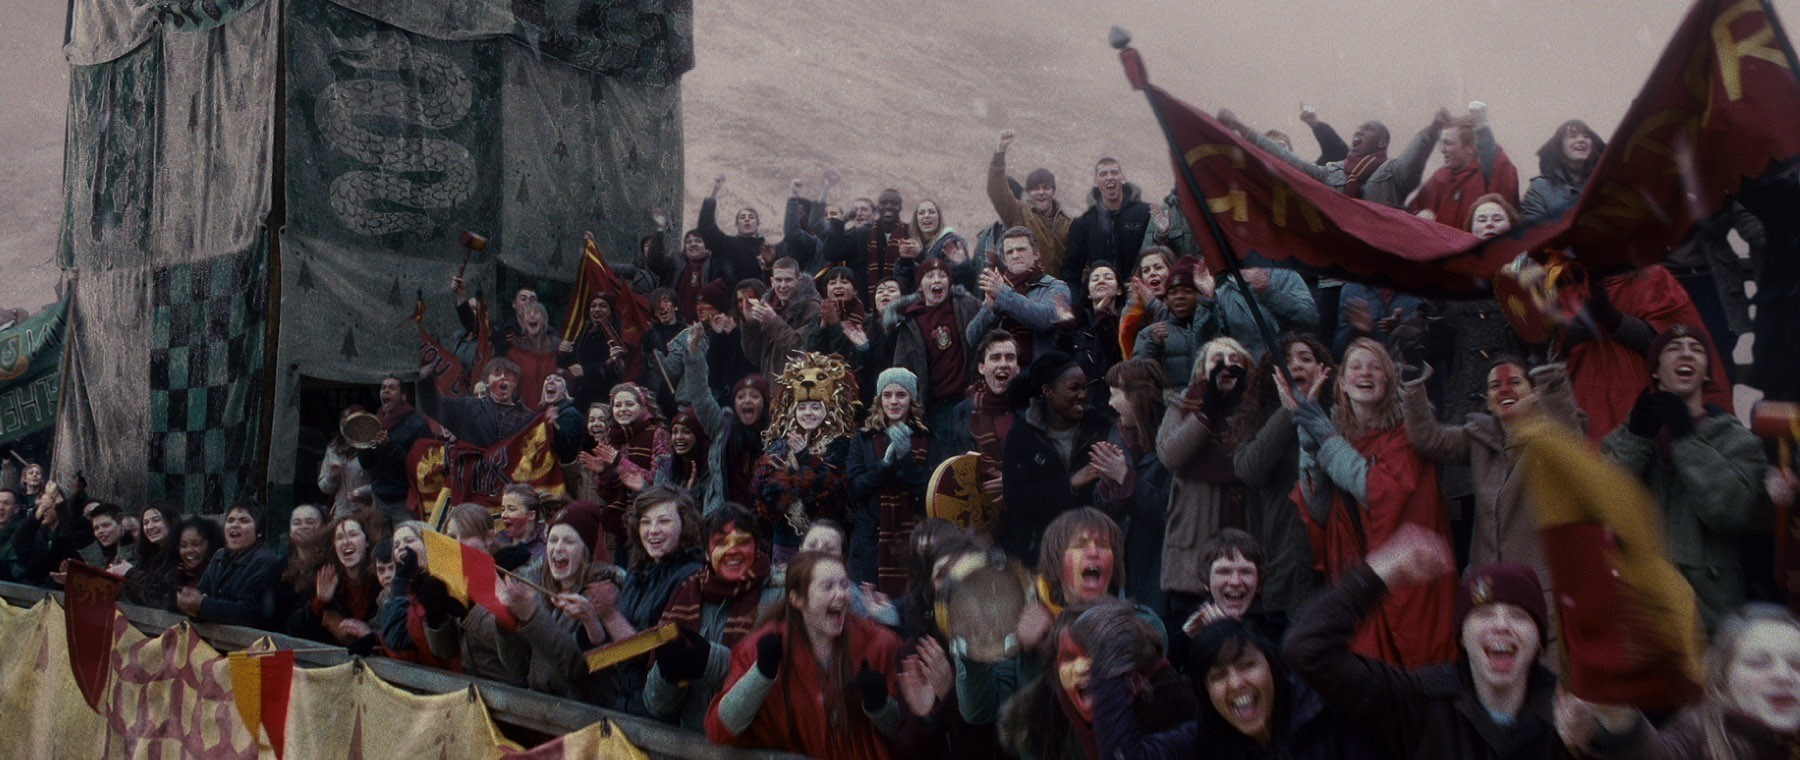 At the Quidditch Game